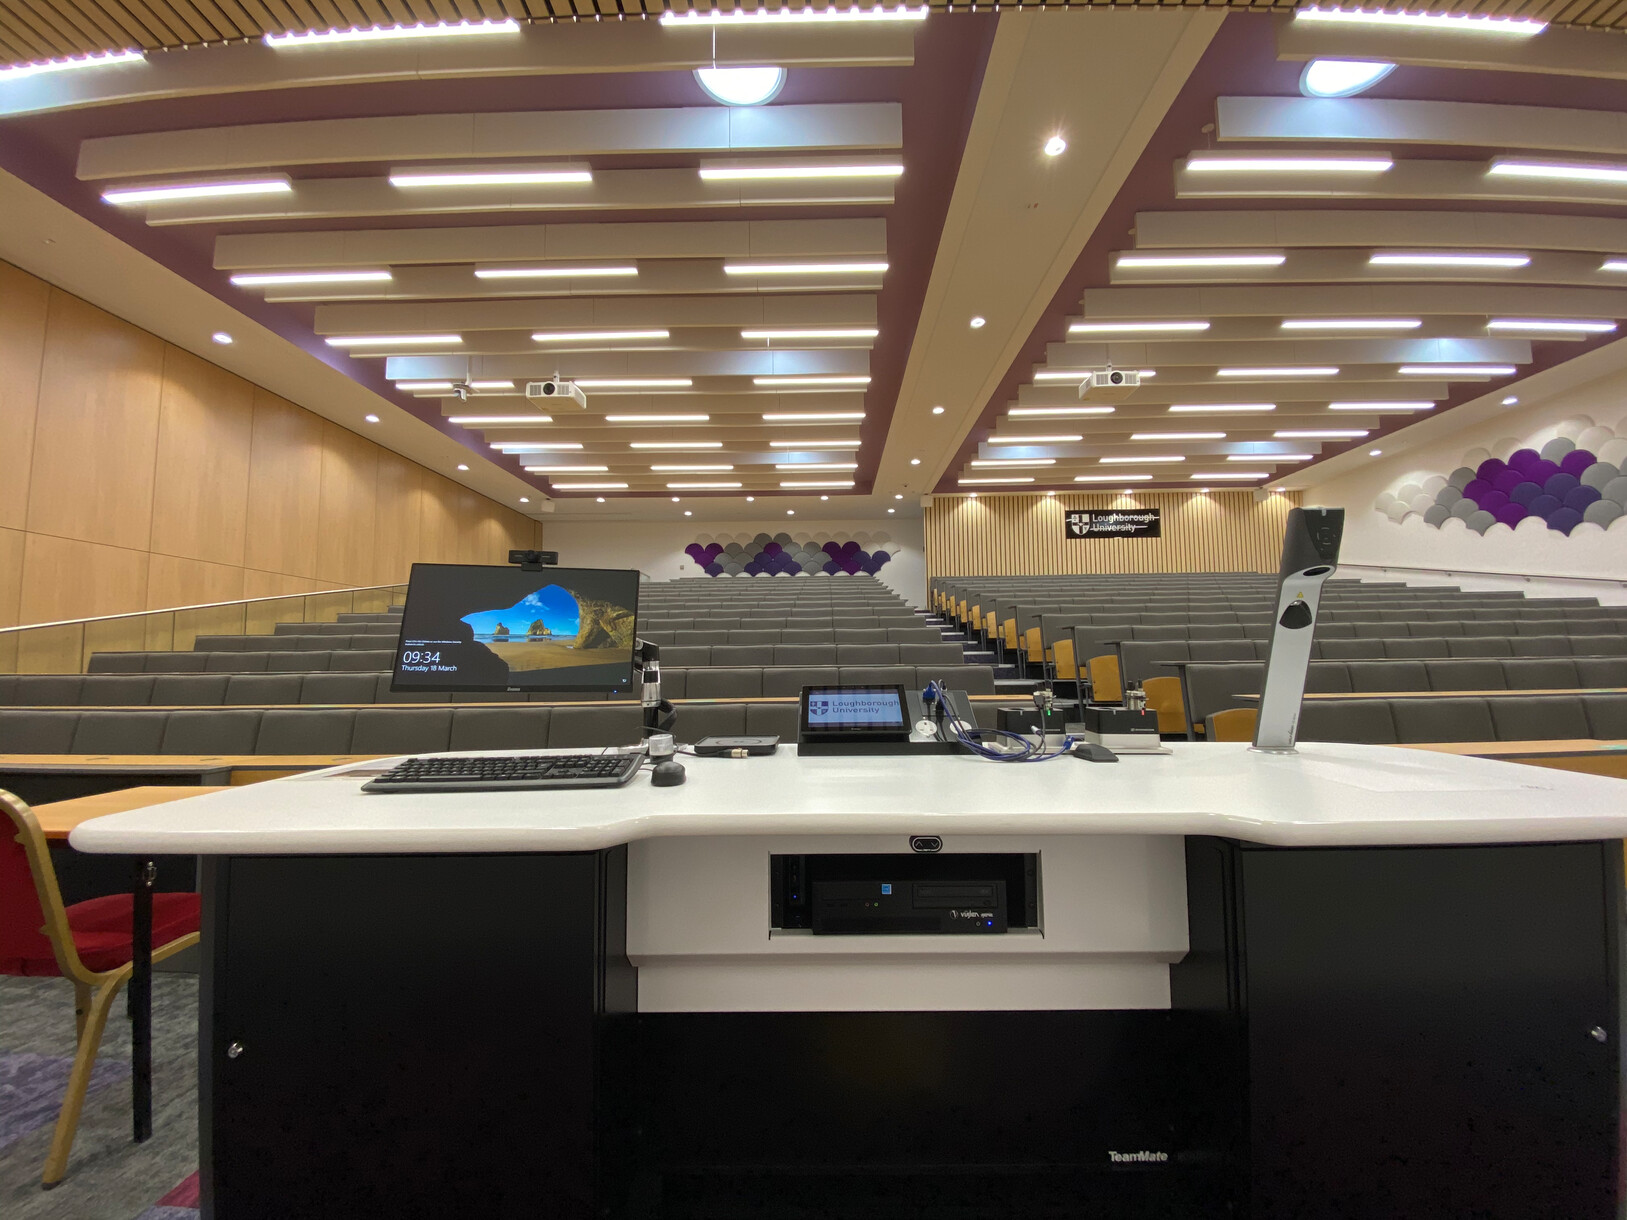 Recording lectures is an important requirement and all Visualizer content can be recorded using the Panopto video platform for convenient on-demand viewing when needed.